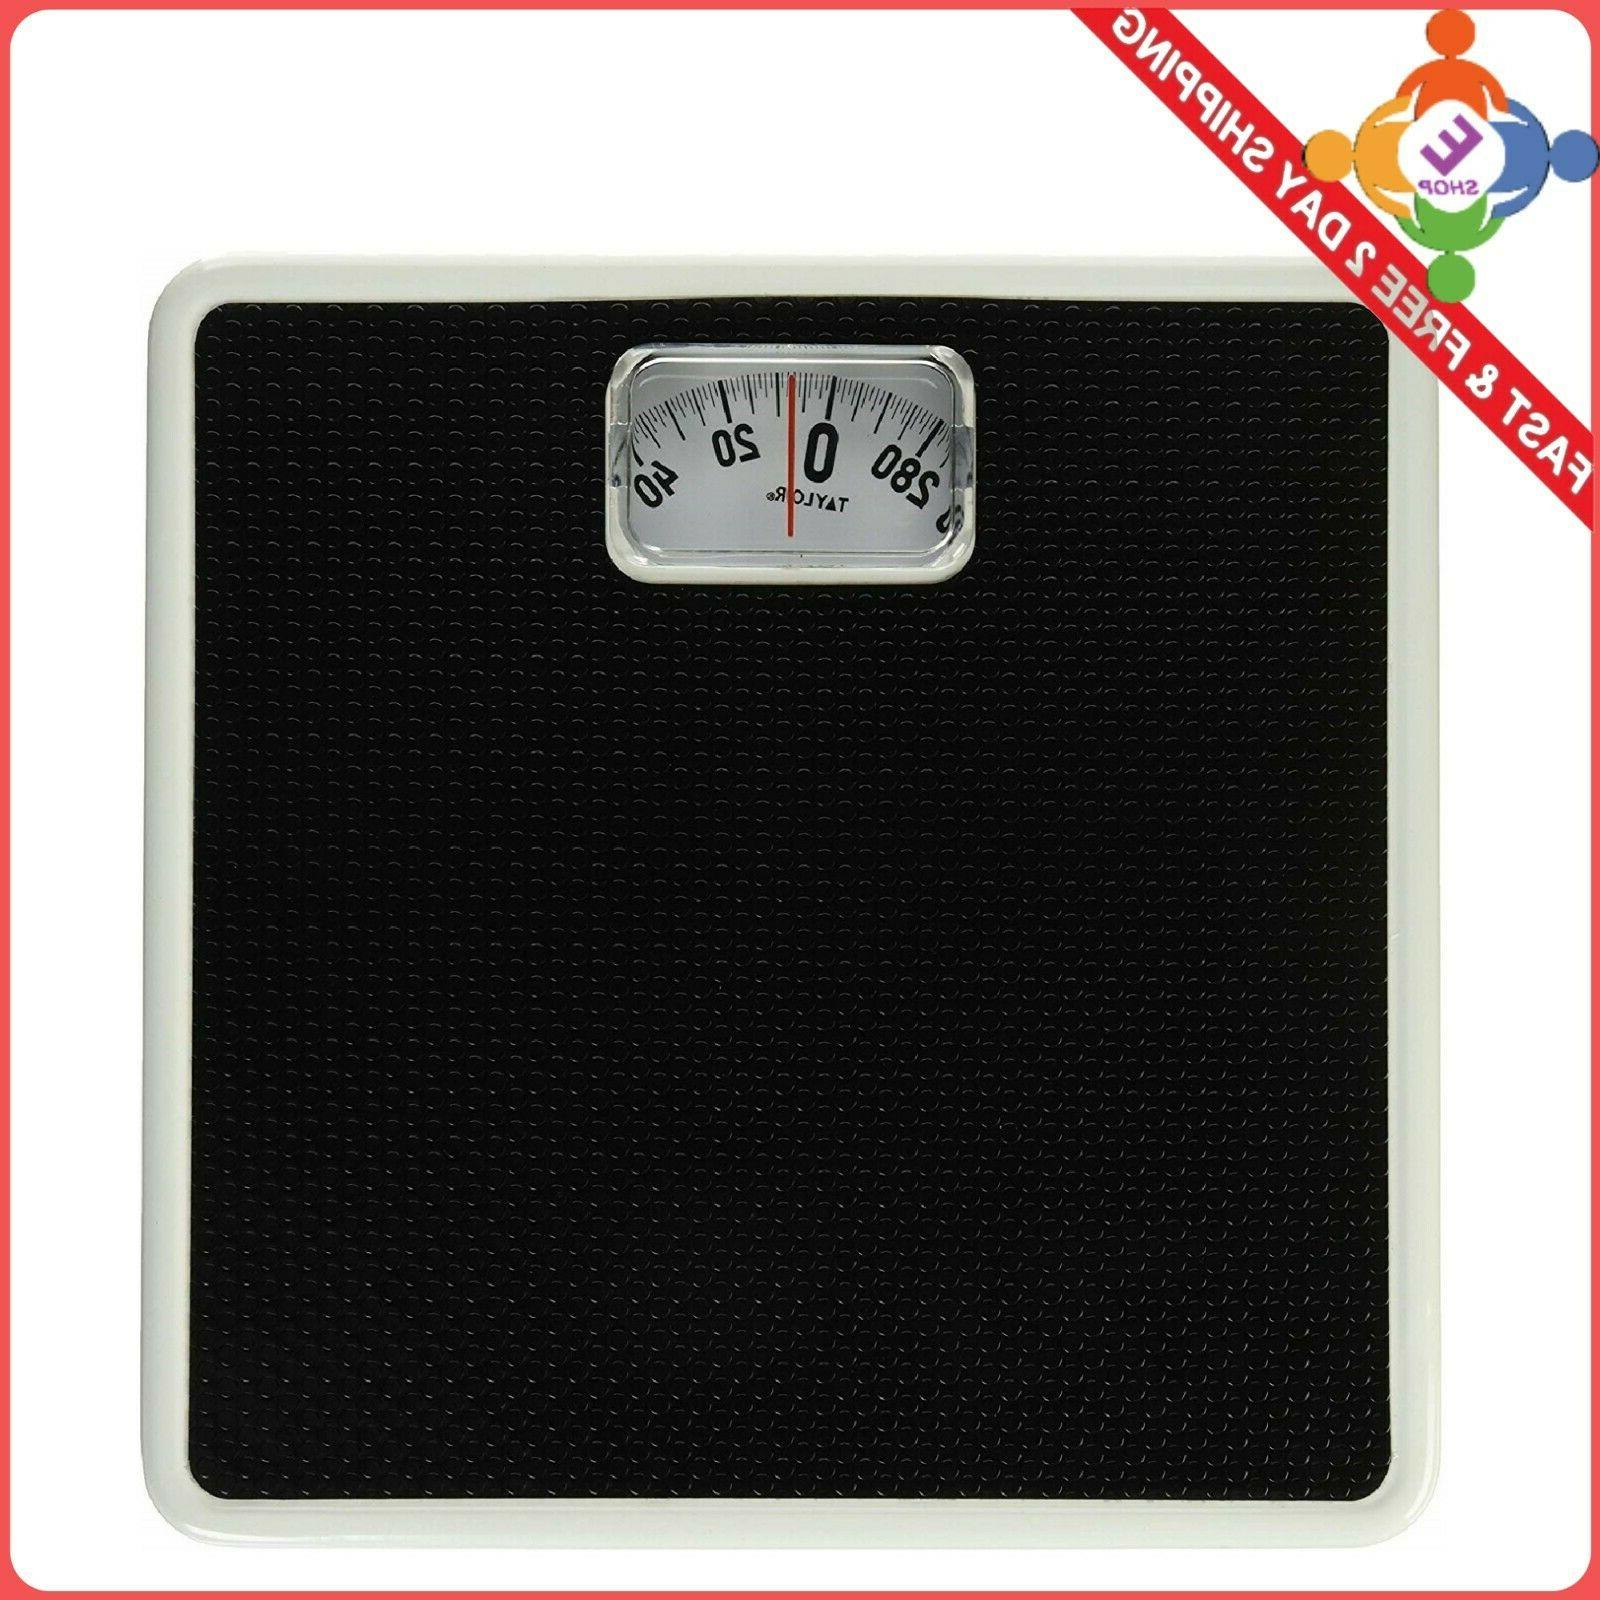 bathroom weighing scale weight loss analog best